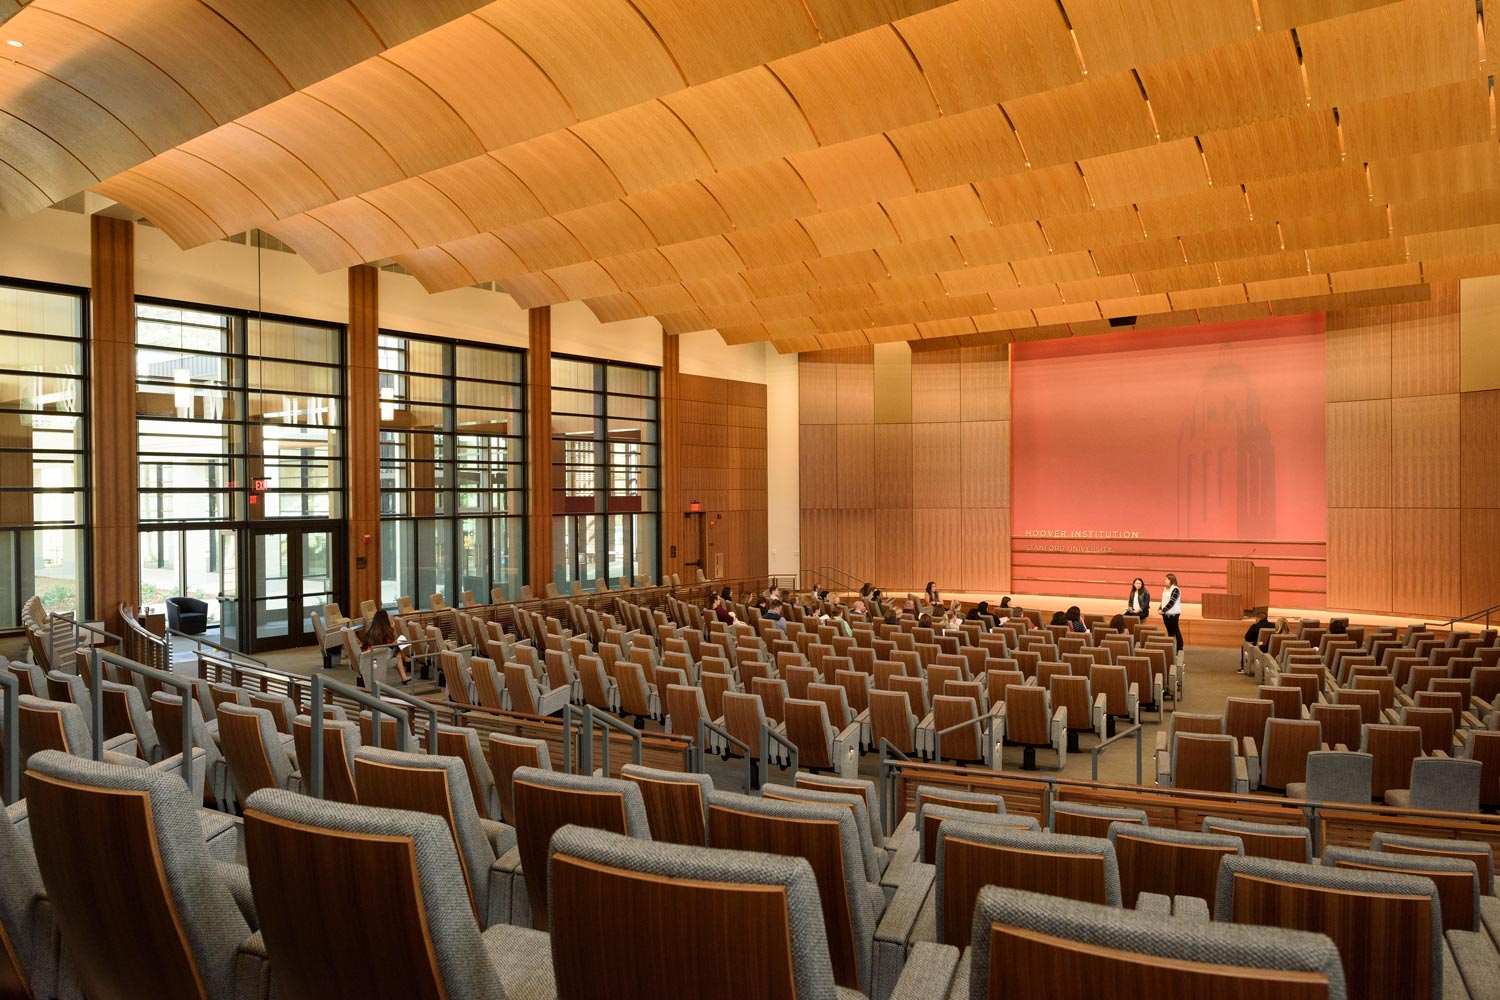 Hoover Institute Auditorium & Custom Designed Chairs.